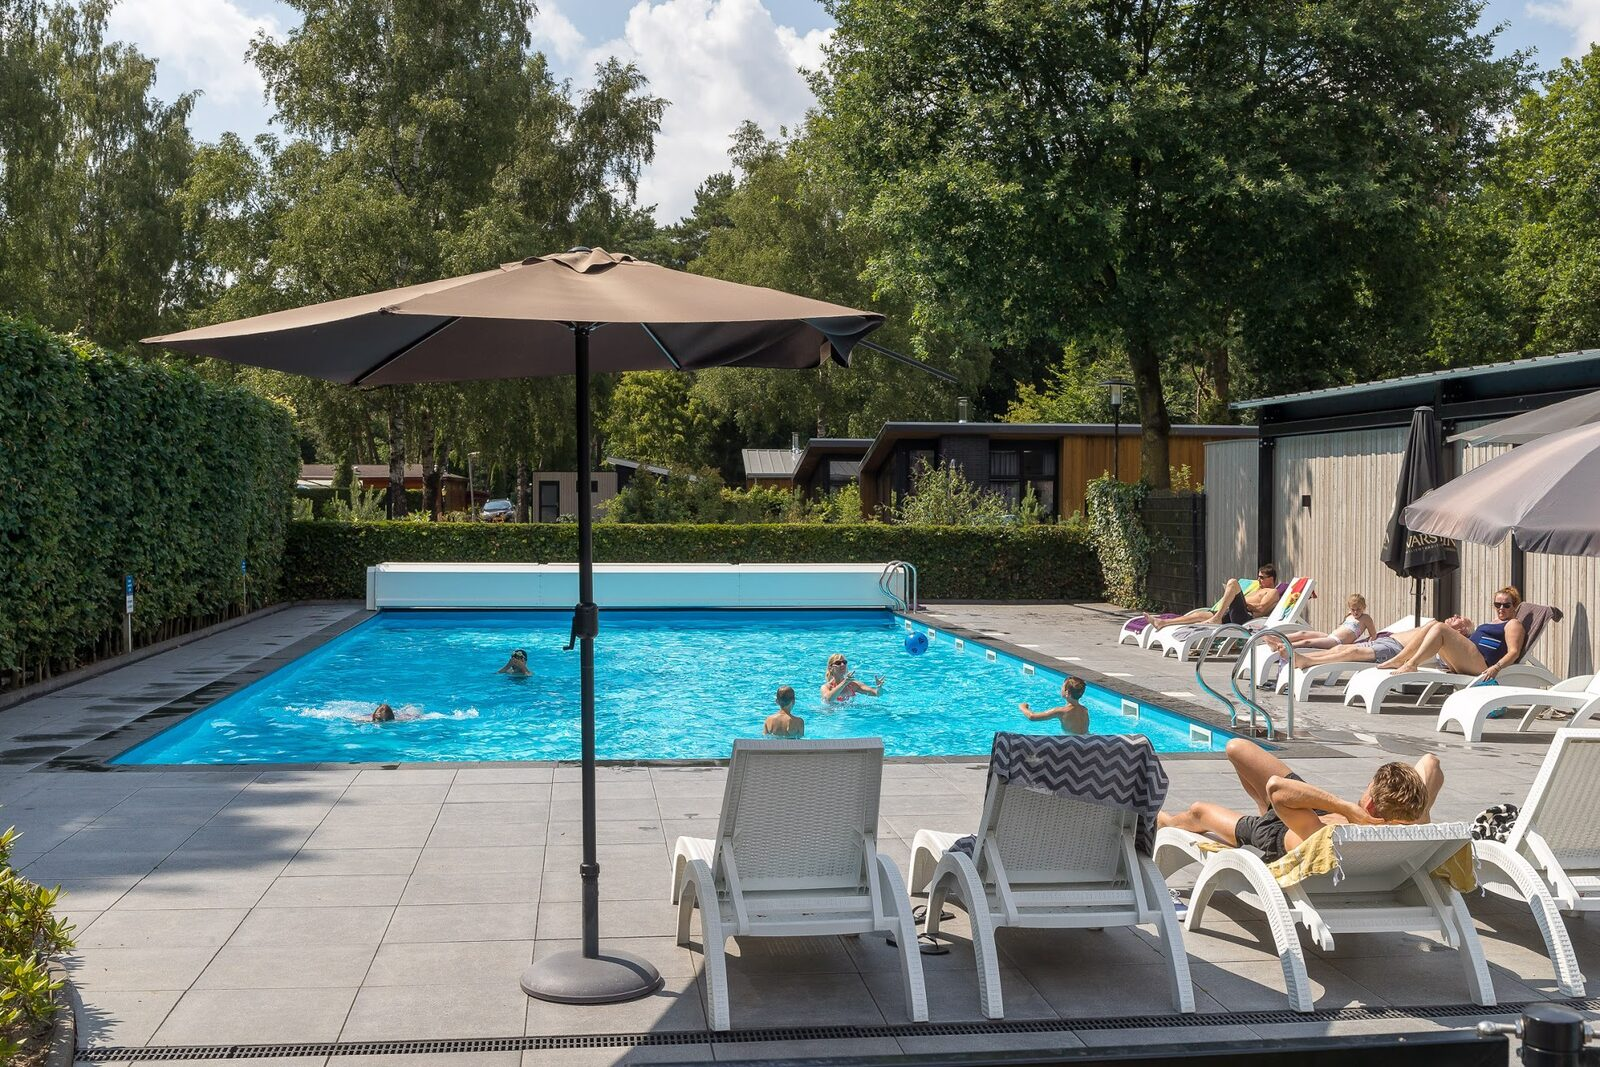 Holiday Resort Veluwe with a swimming pool